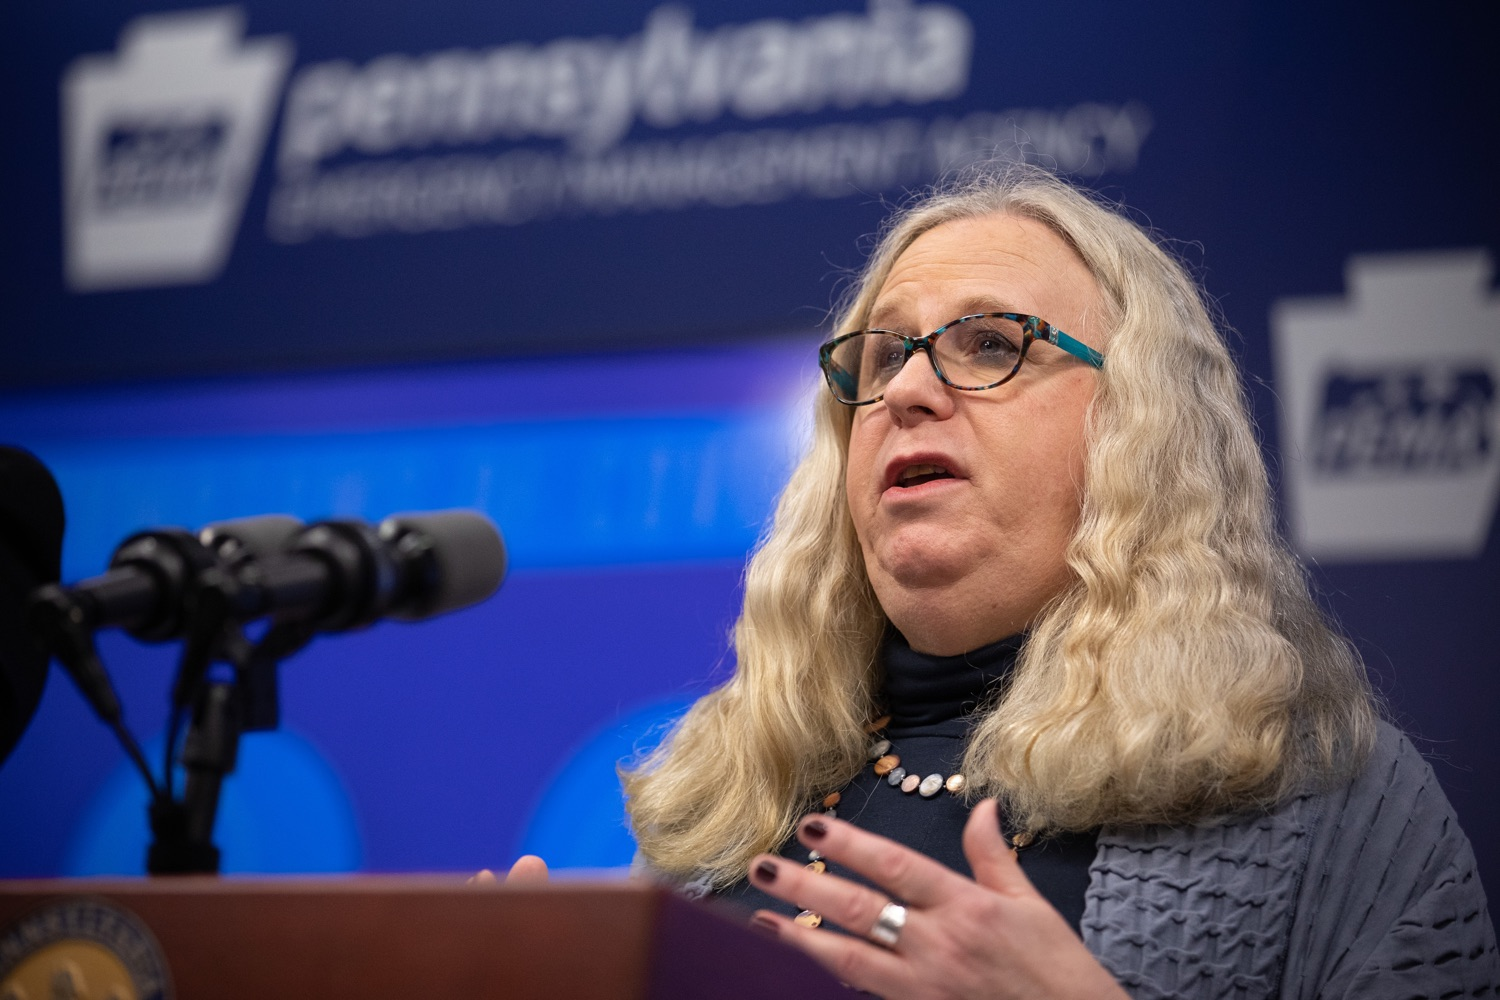 "<a href=""https://filesource.wostreaming.net/commonwealthofpa/photo/17894_doh_covid19_update_dz_0008.jpg"" target=""_blank"">⇣ Download Photo<br></a>Secretary of Health Dr. Rachel Levine speaking at the virtual press conference.  The Pennsylvania Department of Health today confirmed as of 12:00 a.m., March 19, that there are 52 additional positive cases of COVID-19 reported, bringing the statewide total to 185. The state also reported one death, an adult from Northampton County. All people are either in isolation at home or being treated at the hospital. Harrisburg, PA- March 19, 2020"